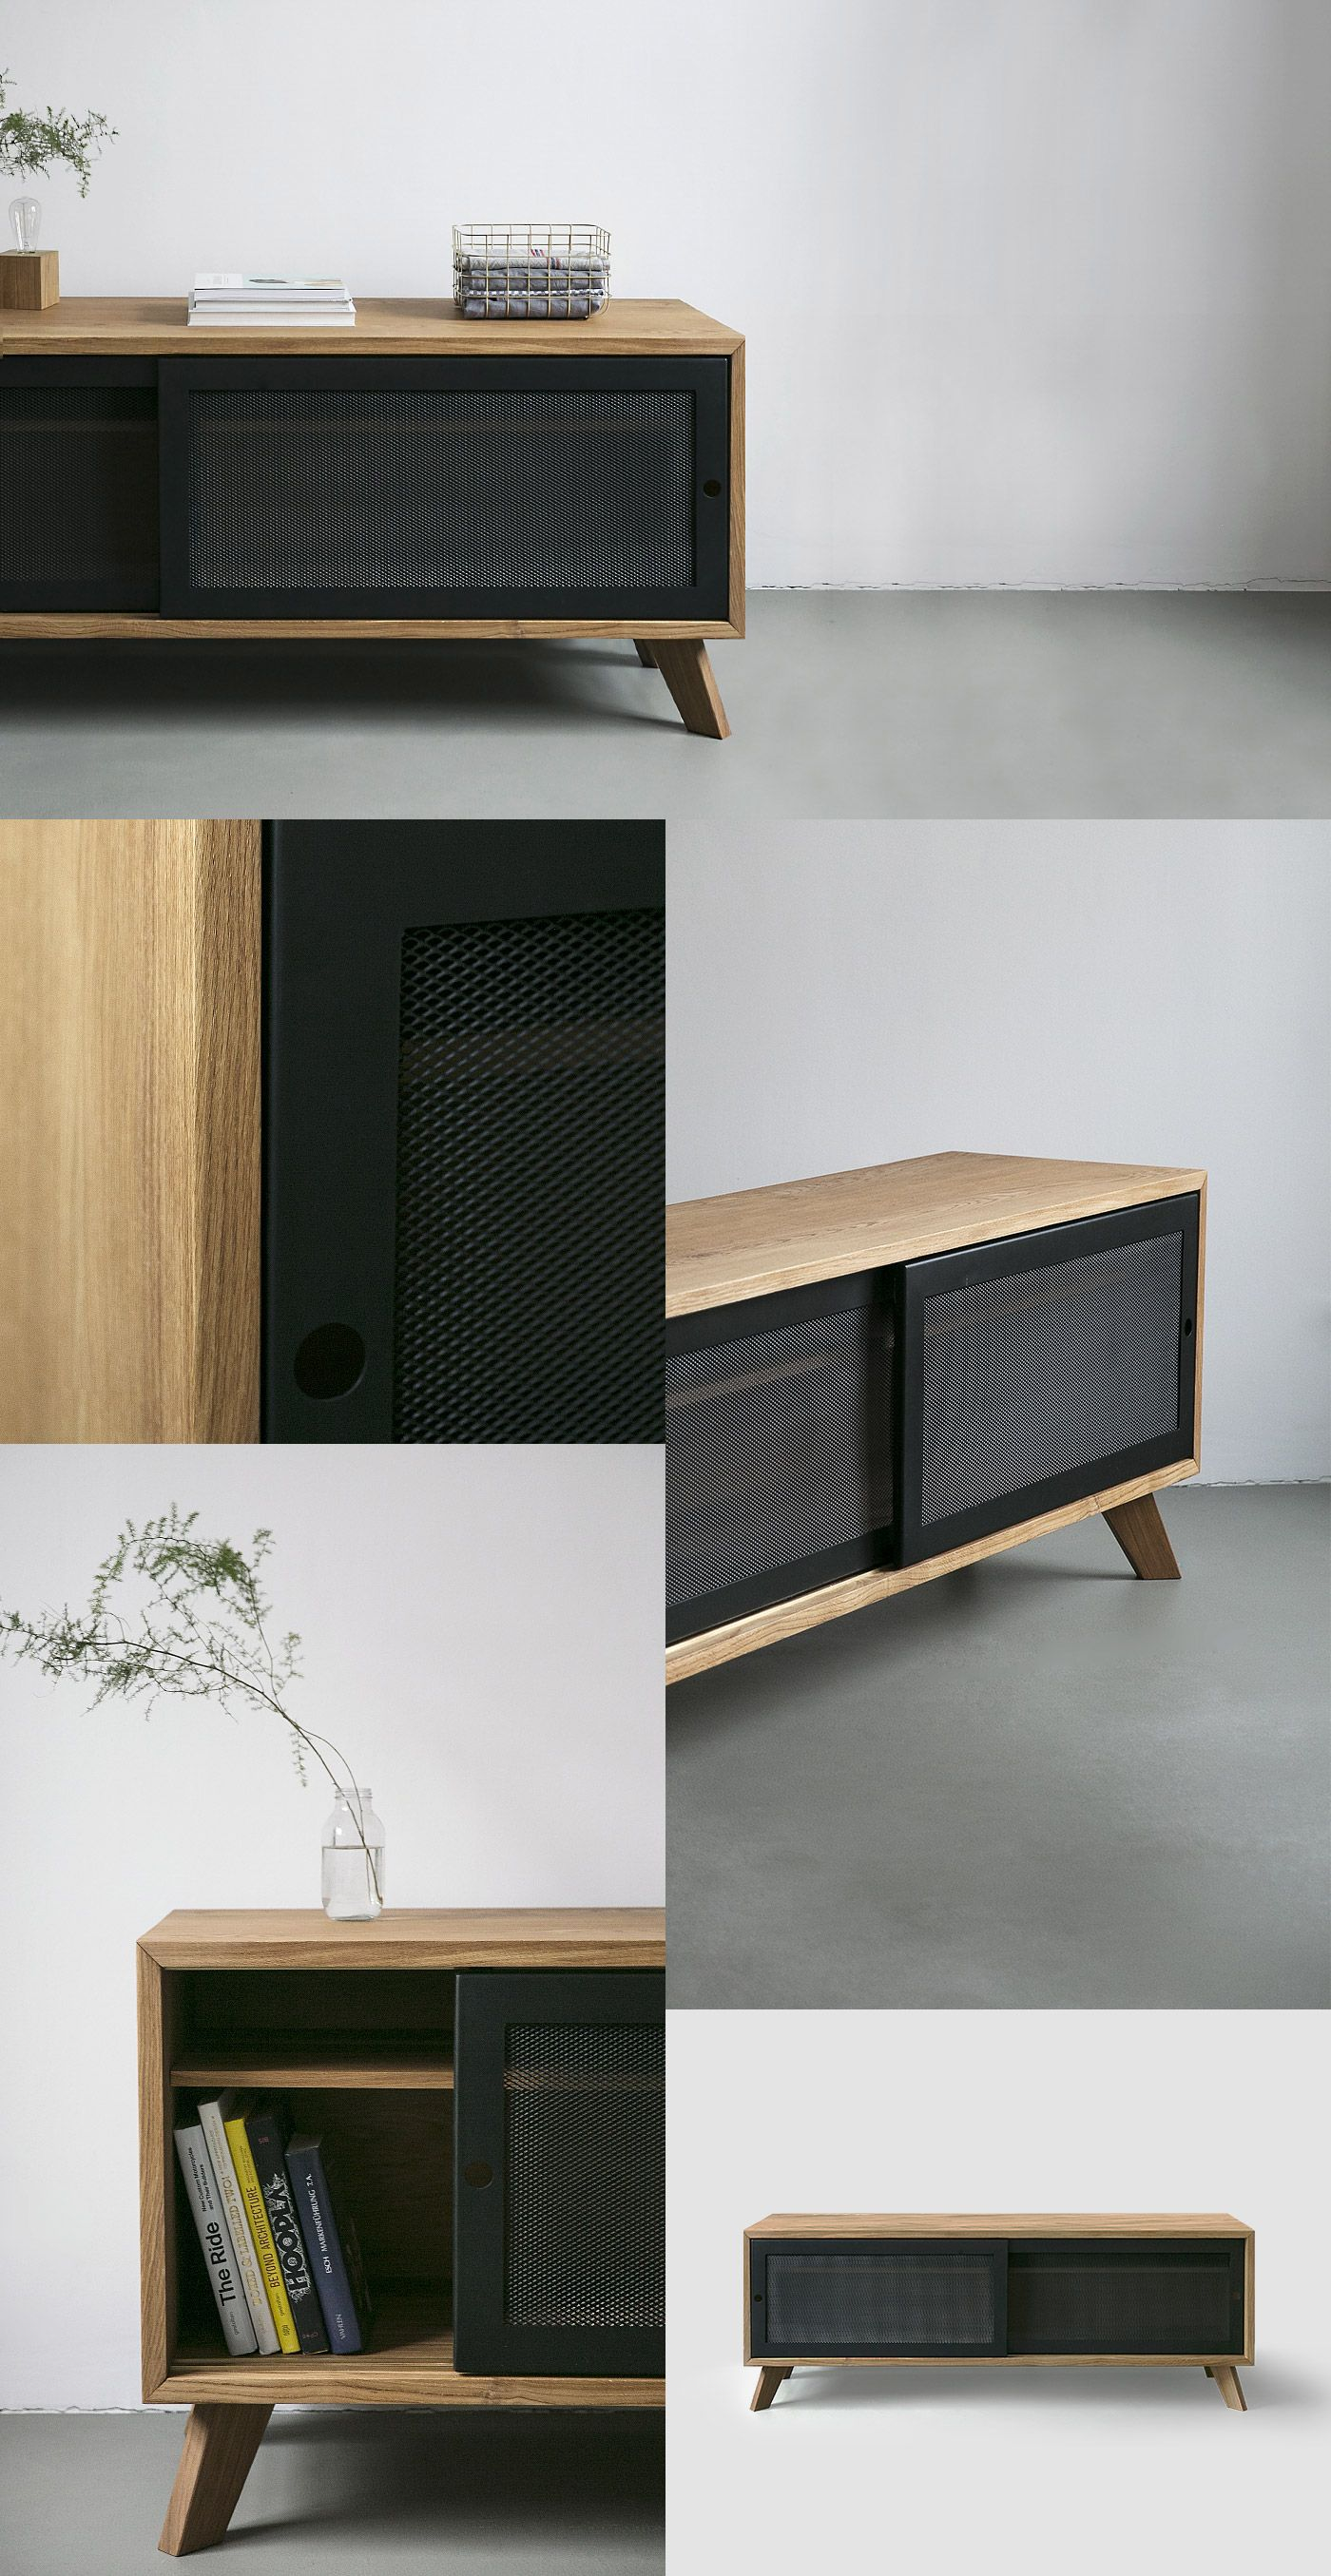 Holzmöbel Wohnzimmer Most Awesome Oak And Stell Mesh Sideboard Things I Like